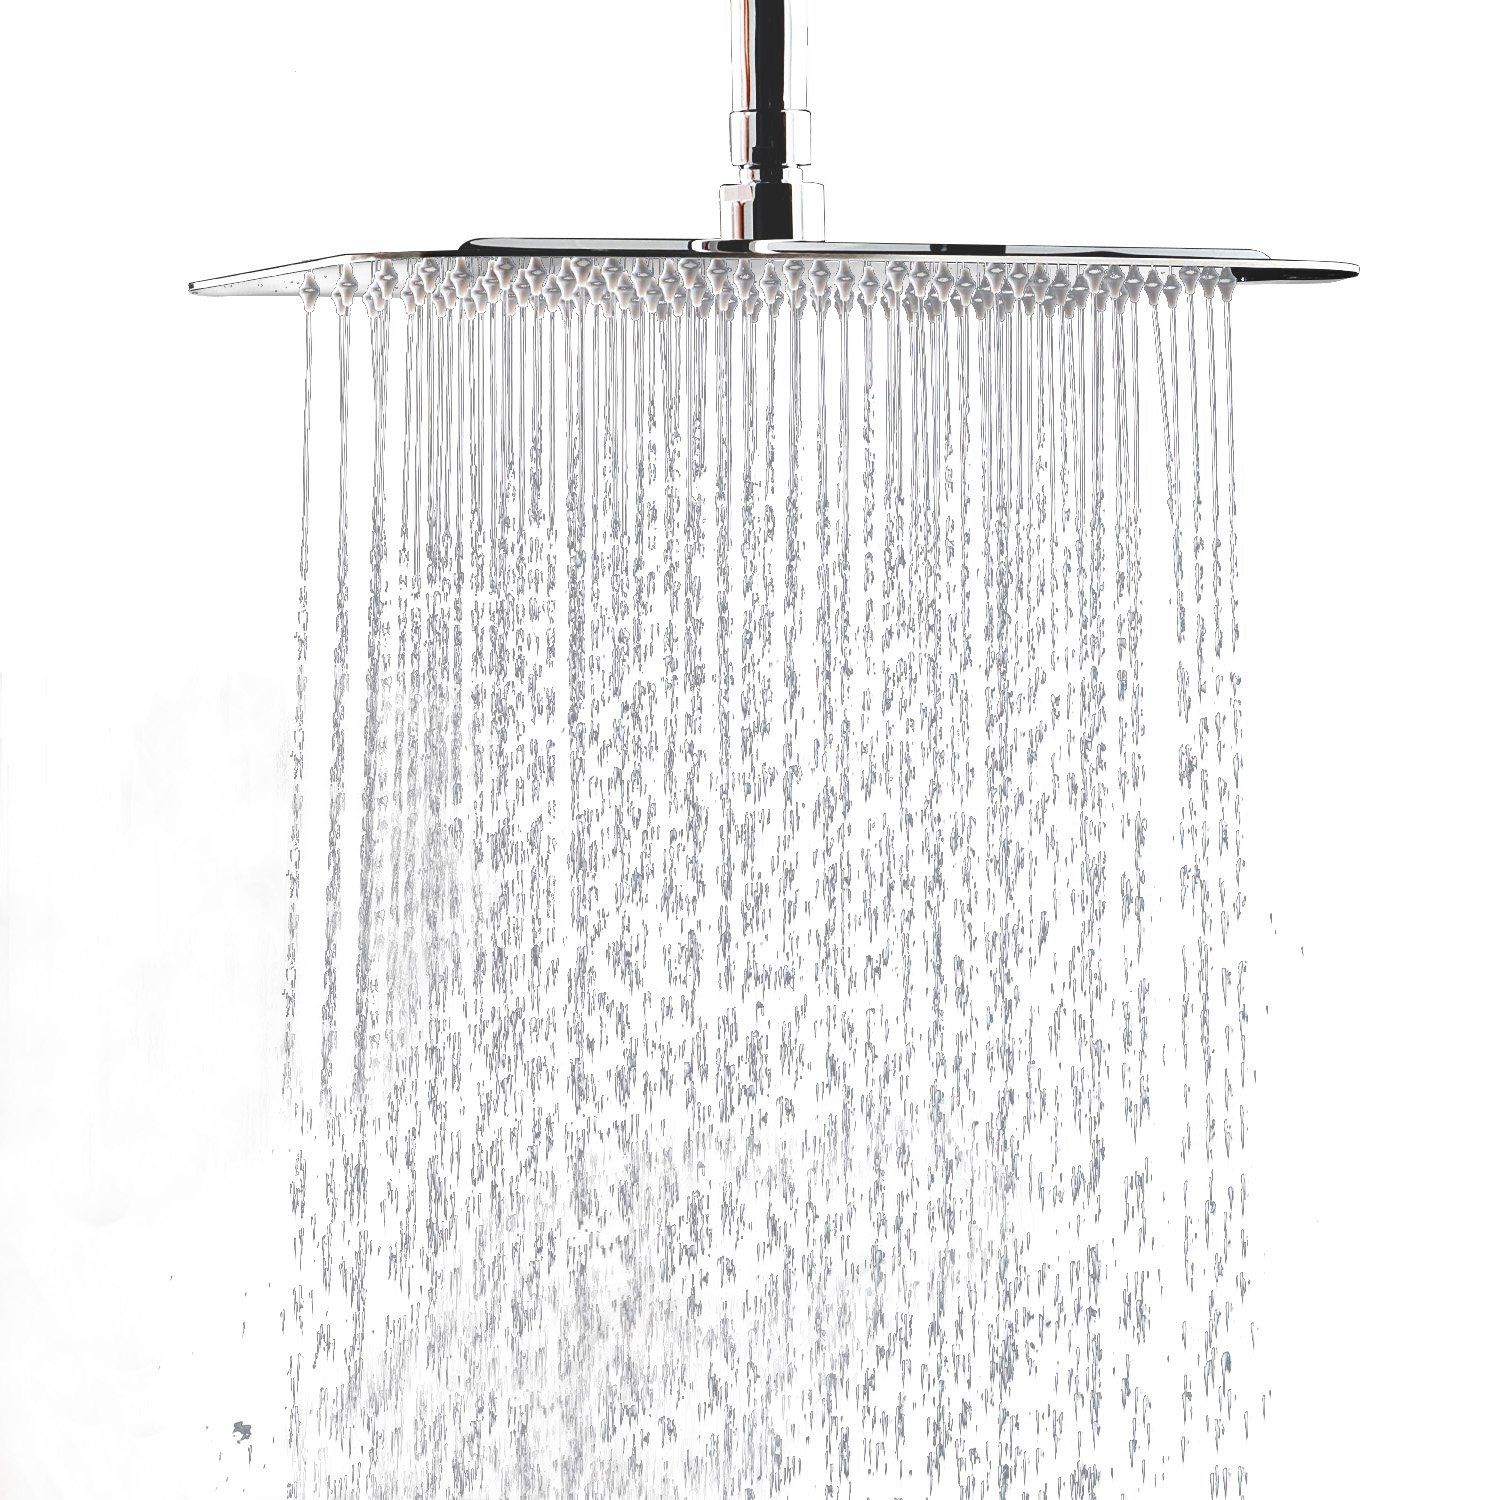 WYJP Stainless Steel Large Square High Pressure Rain Shower Head